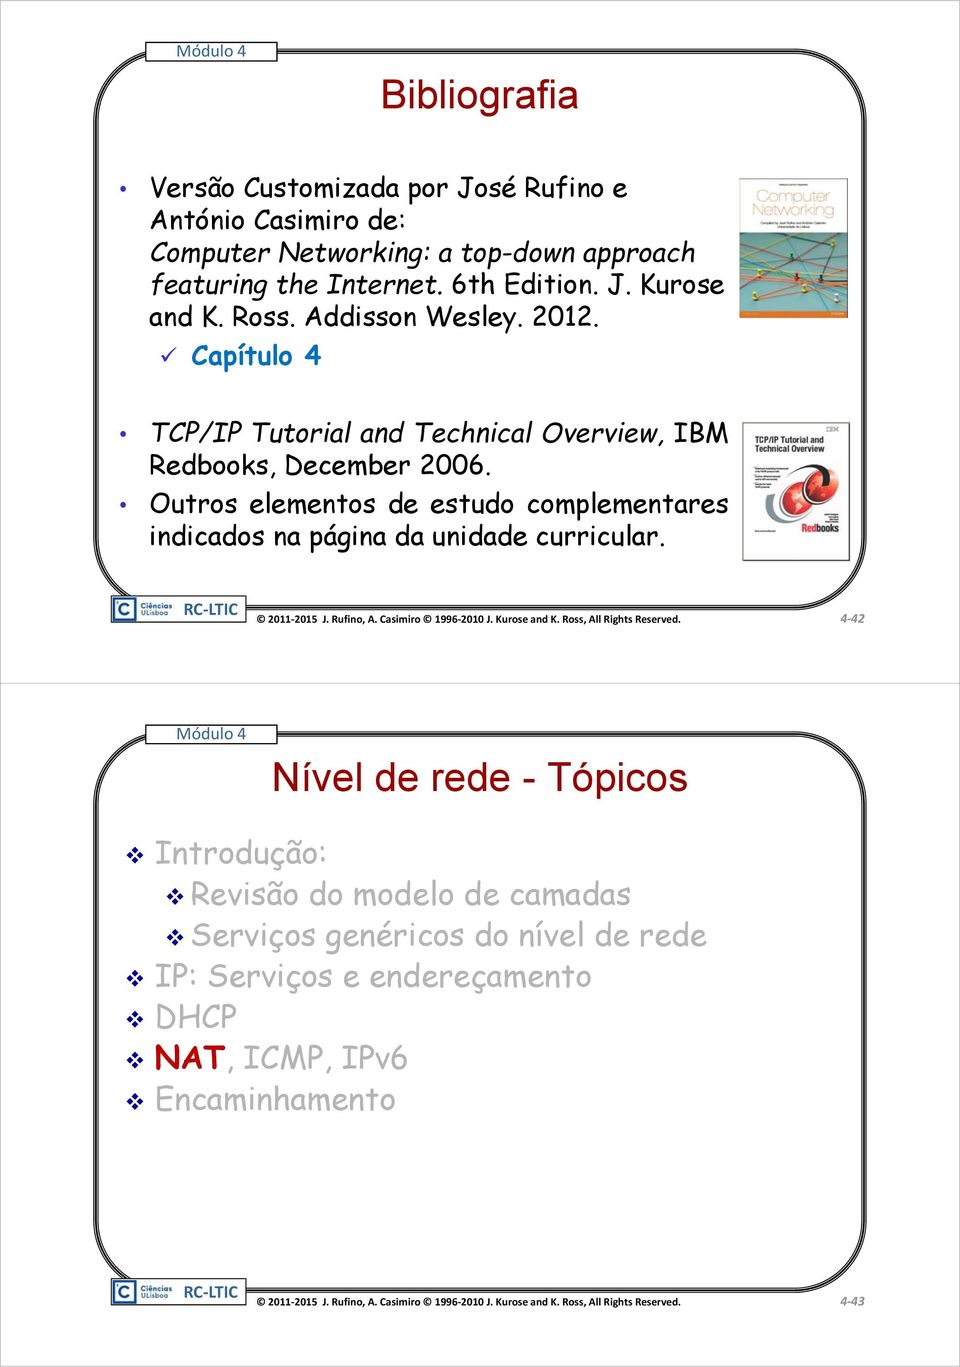 Capítulo 4 TCP/IP Tutorial and Technical Overview, IBM Redbooks, December 2006.